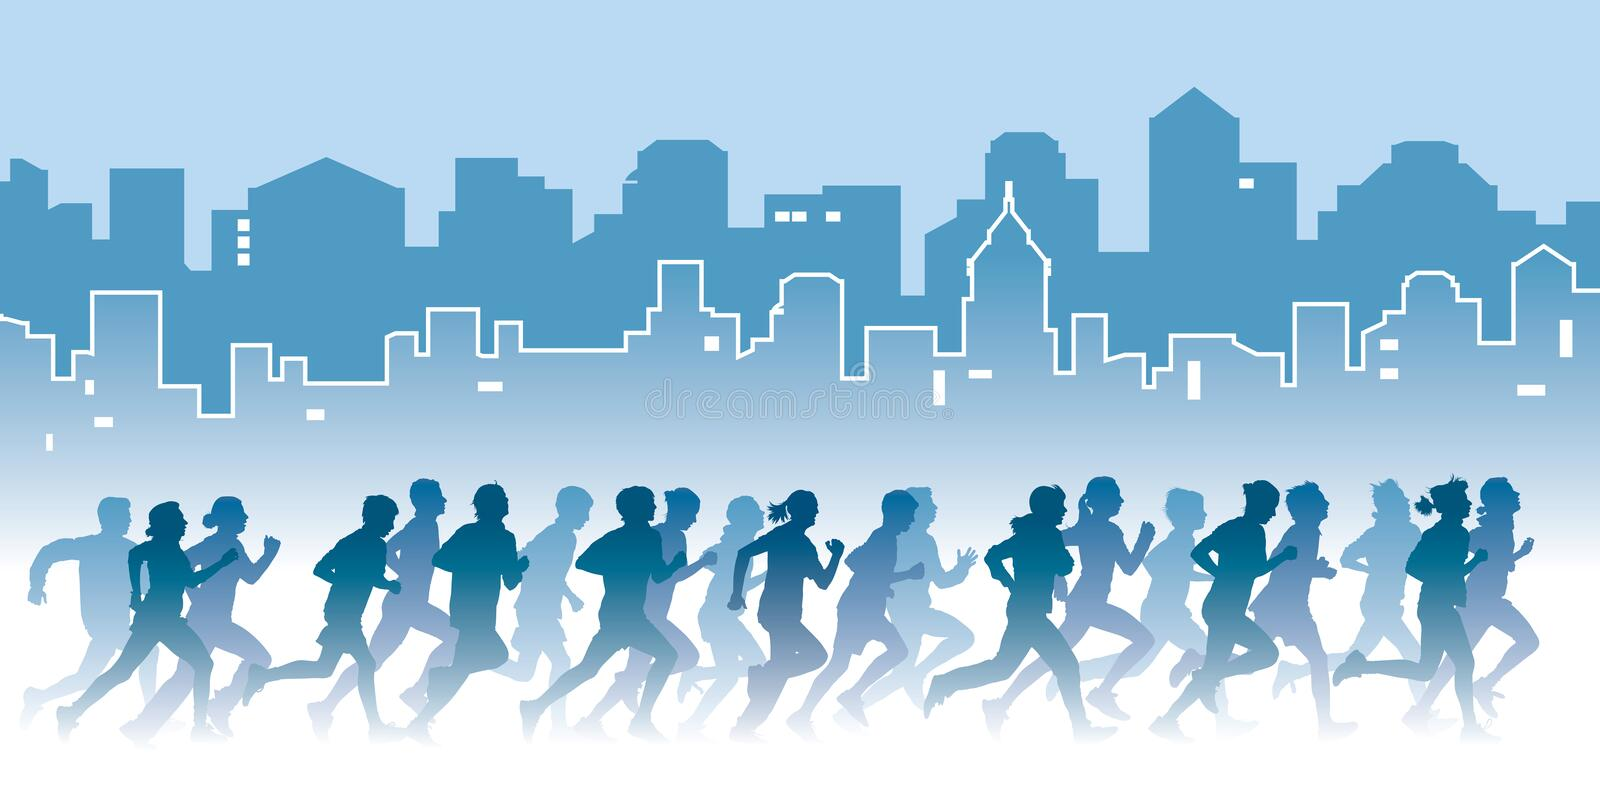 Running people. Crowd of young people running on a street. Sport vector illustration royalty free illustration